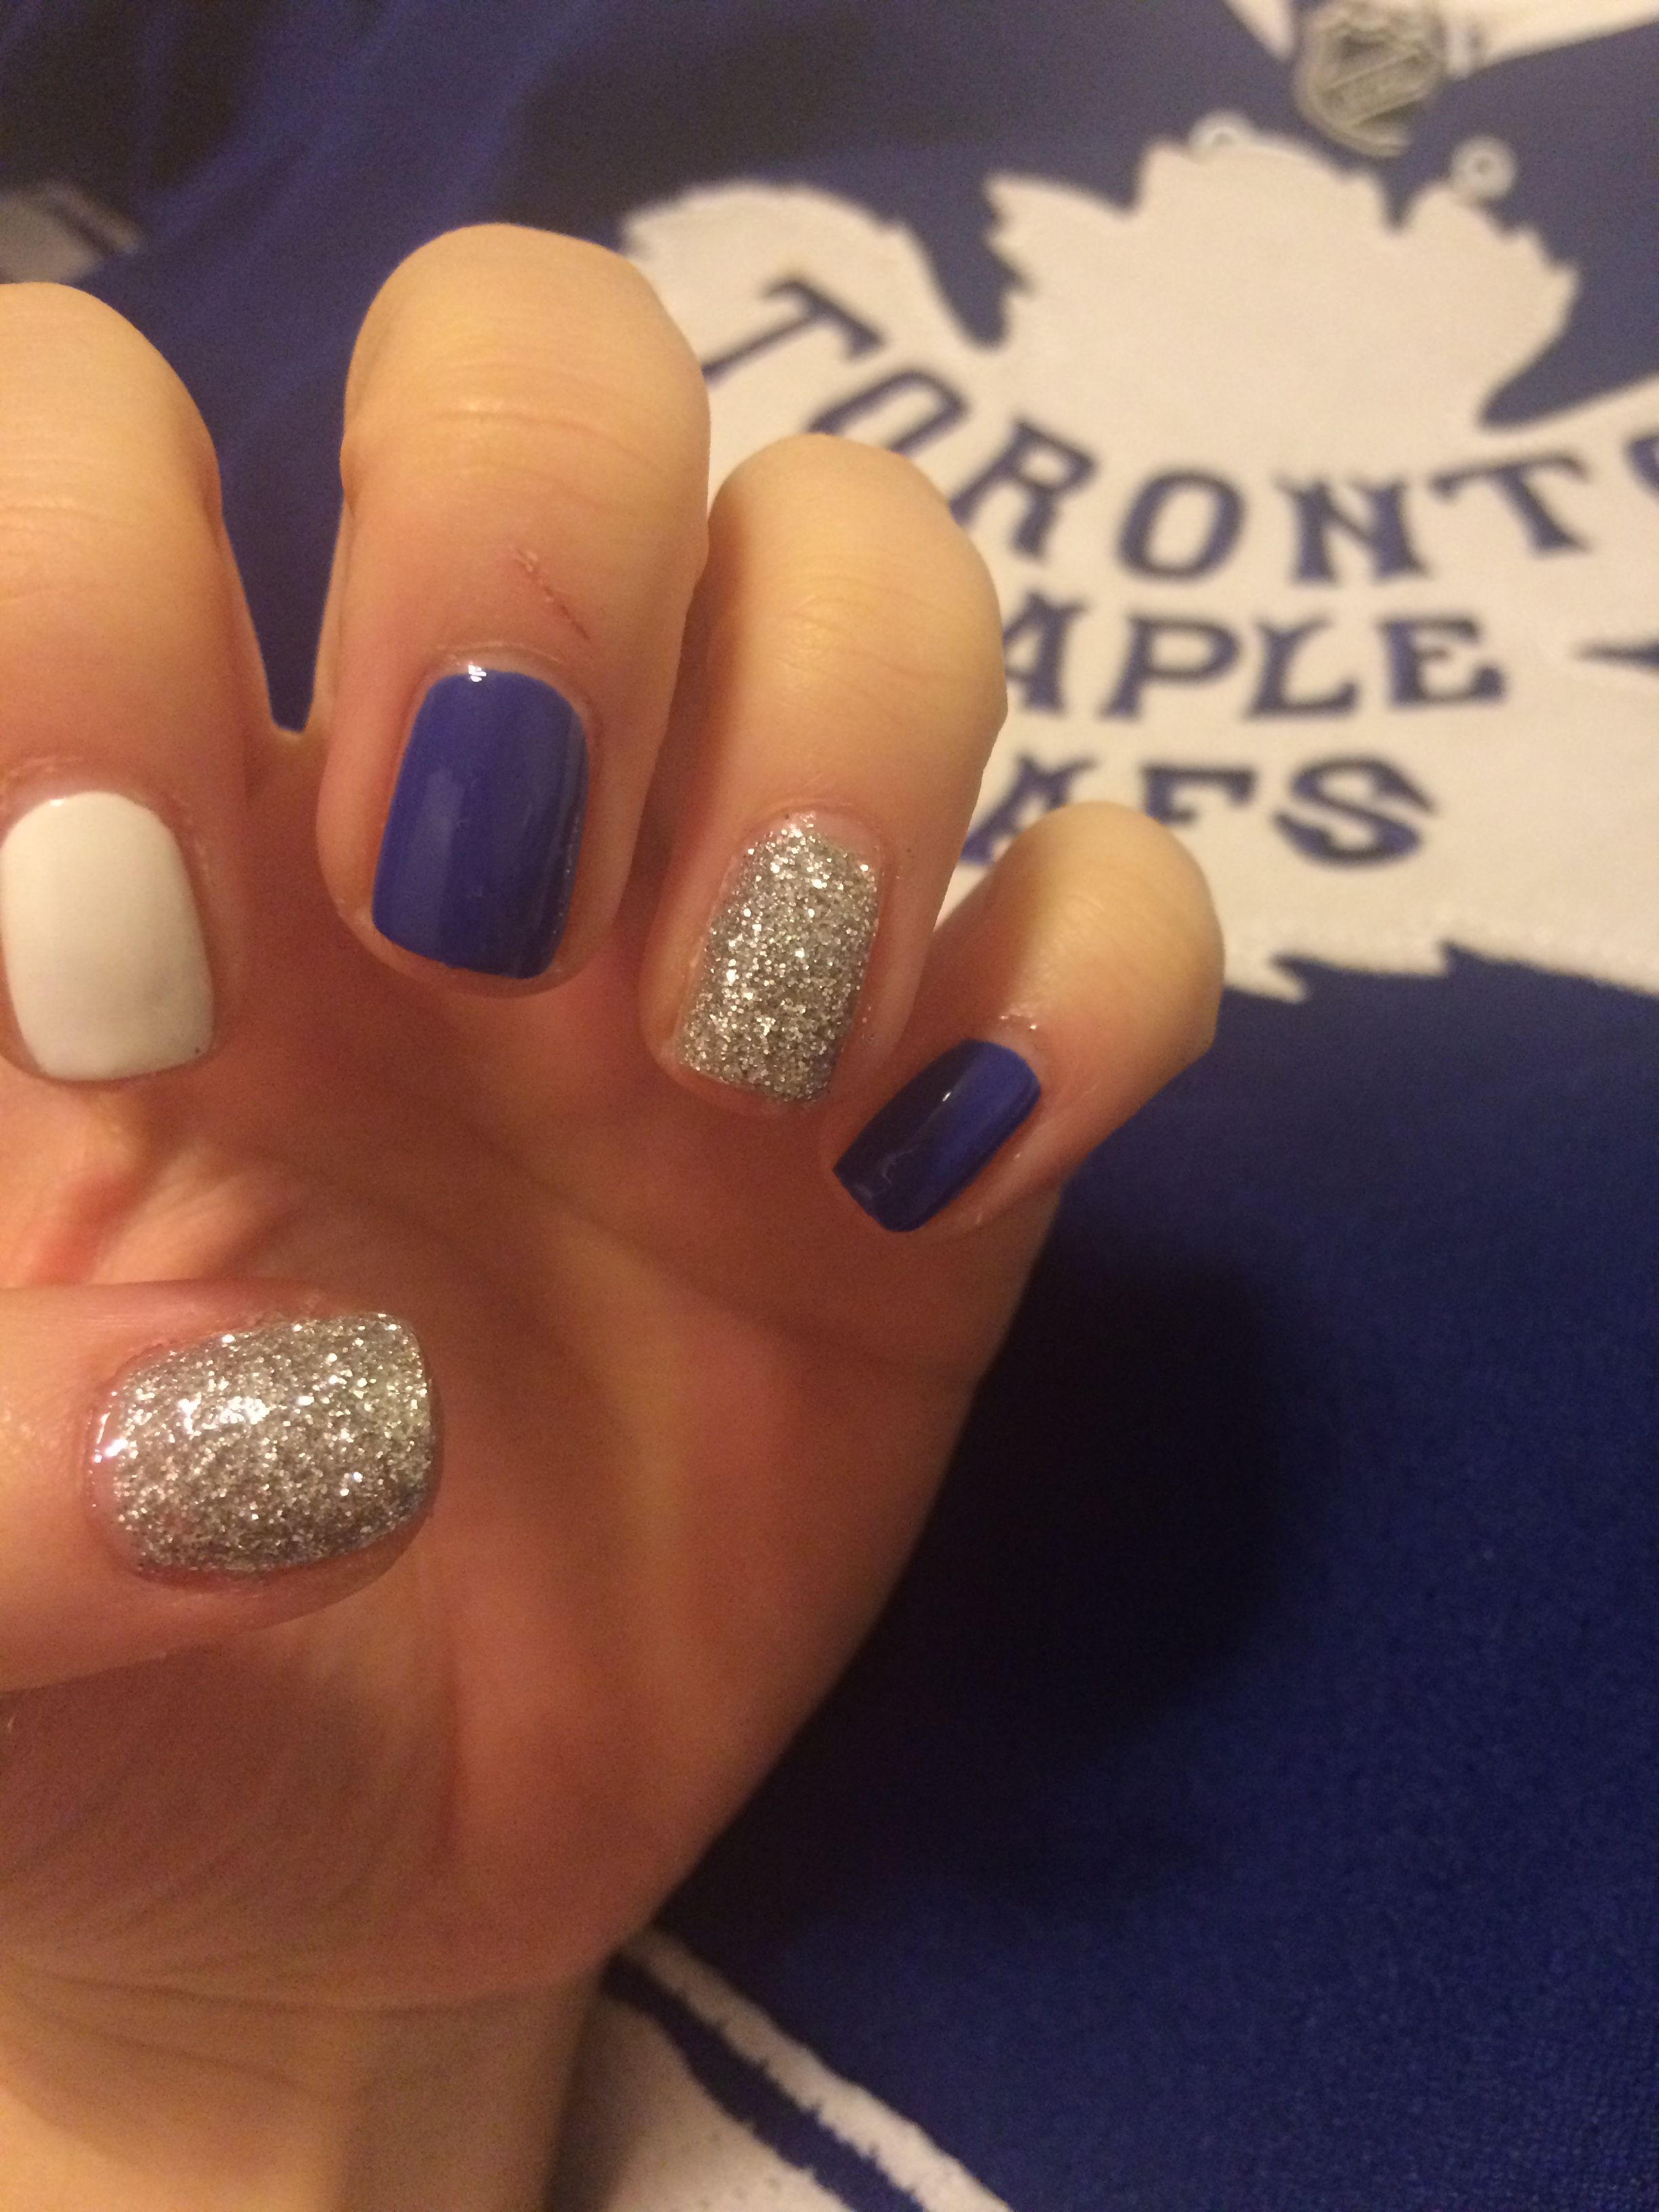 Toronto maple leafs nails nail art go leafs go! | Me Like ...